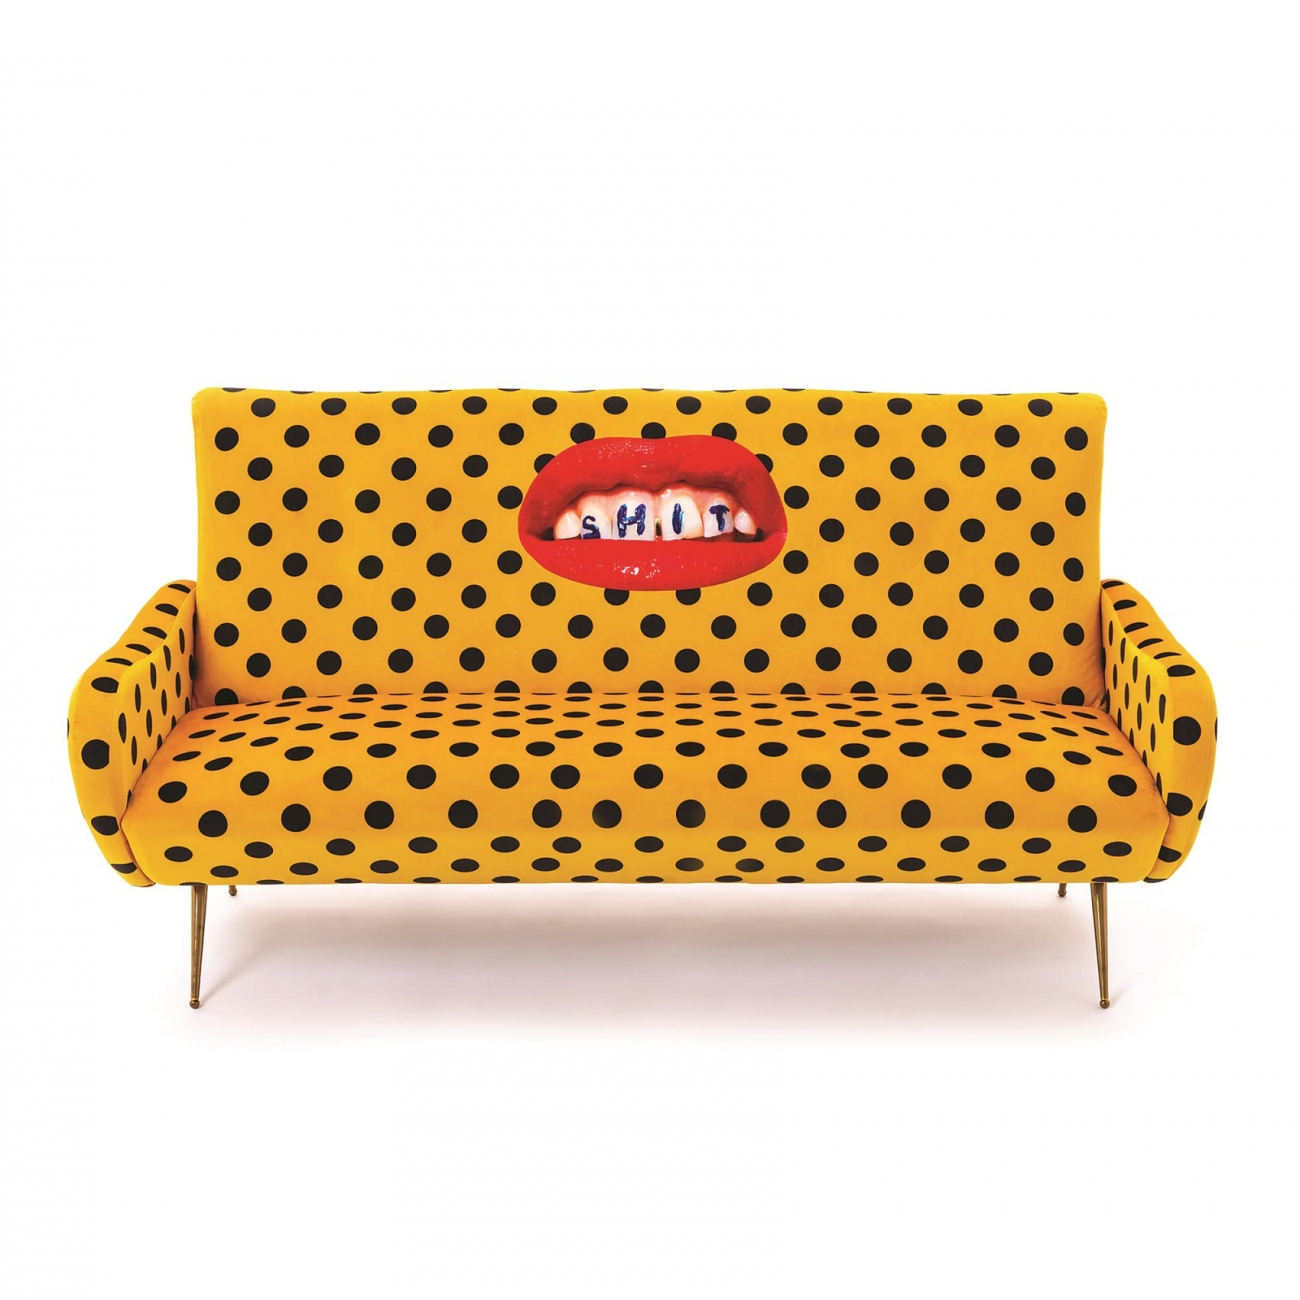 SELETTI TOILETPAPER SHIT 3 SEATER SOFA